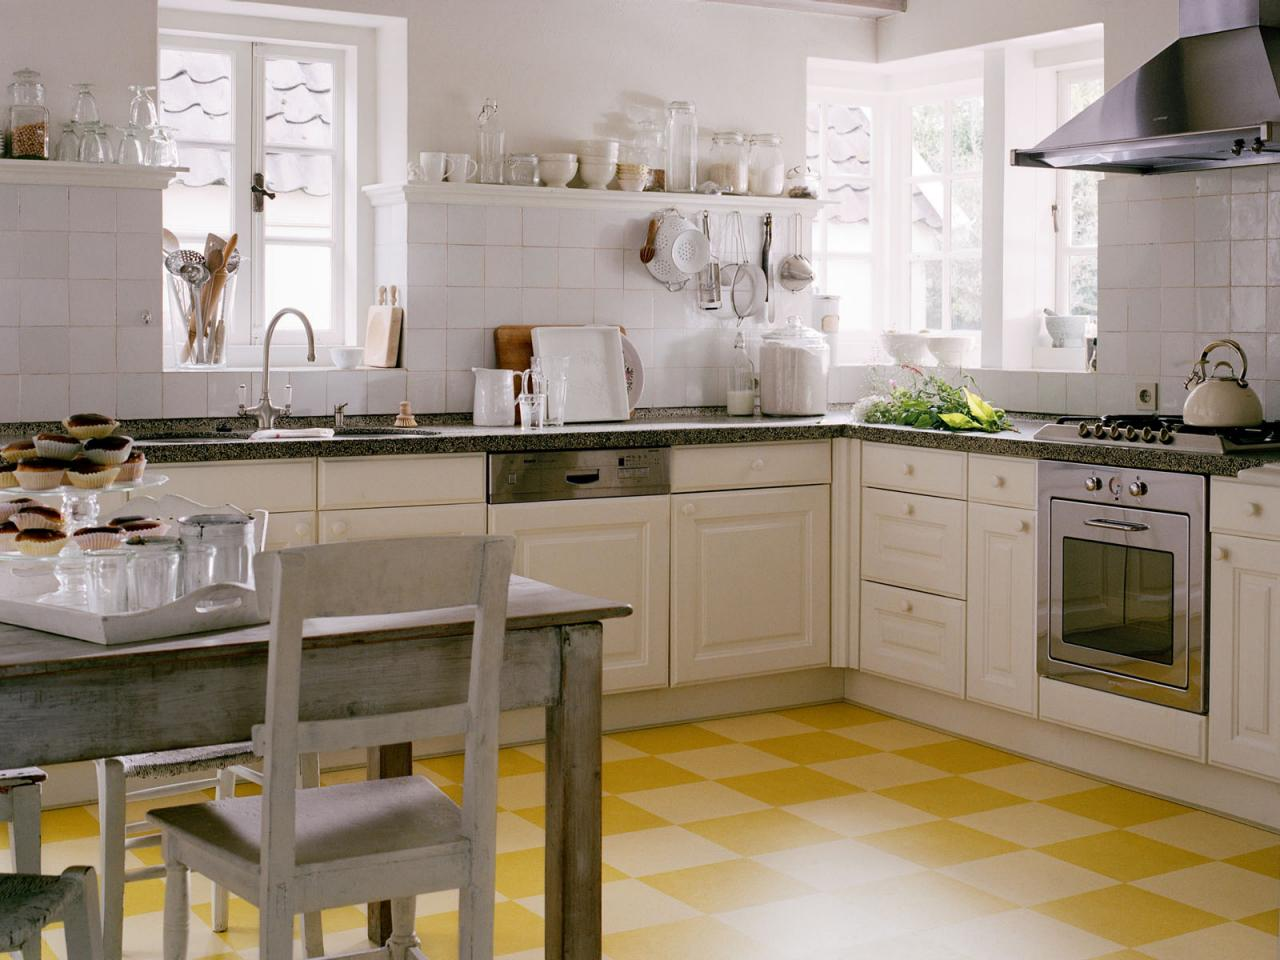 Linoleum flooring in the kitchen hgtv - Retro flooring kitchen ...